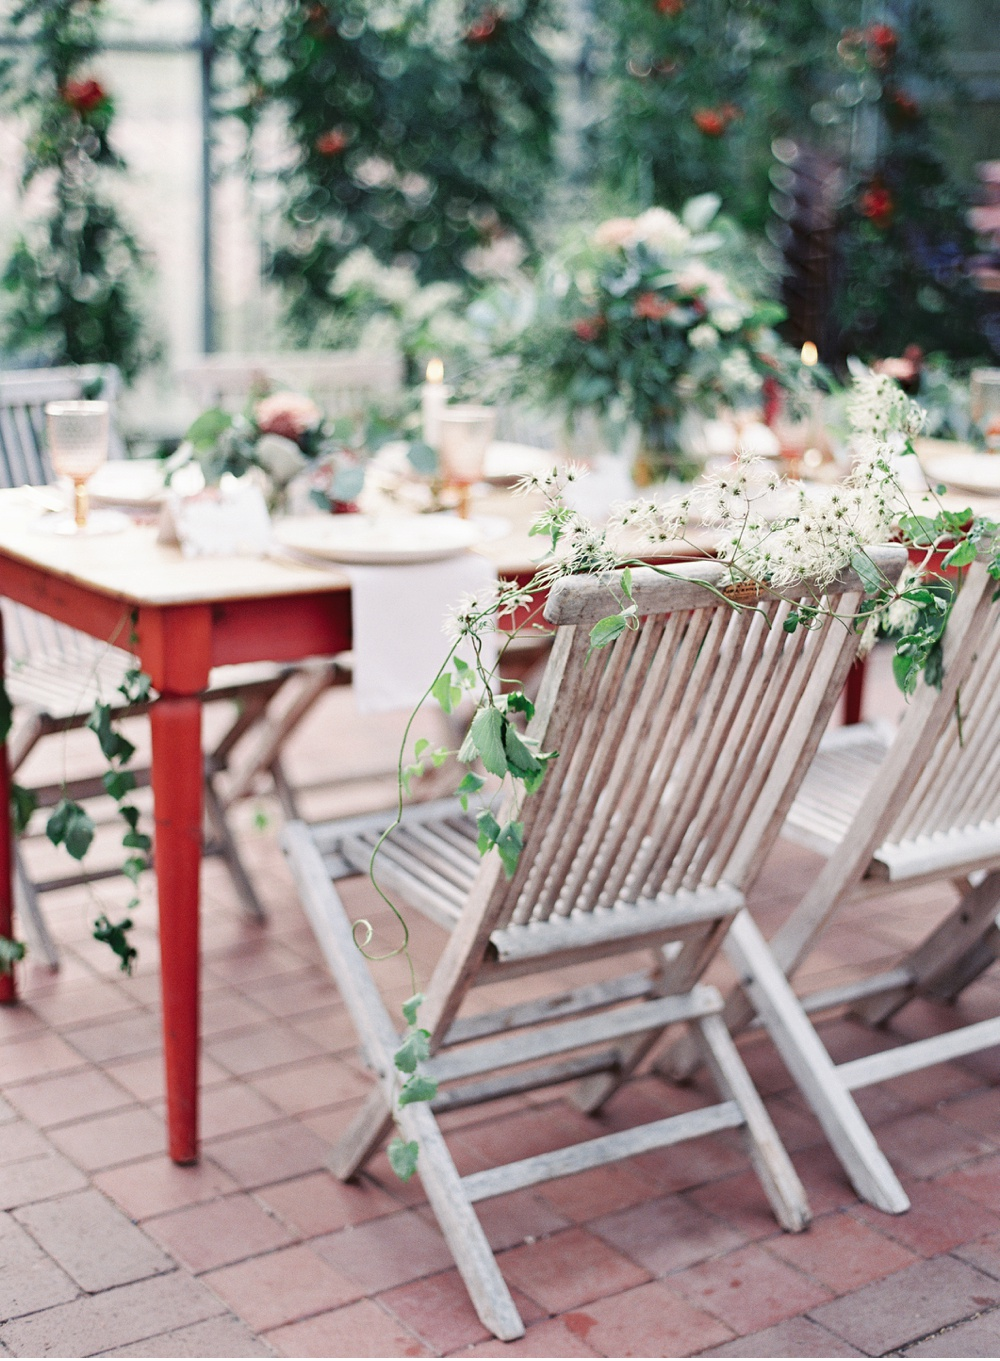 Greenhouse_wedding_inspiration©MadalinaSheldon_0012.jpg